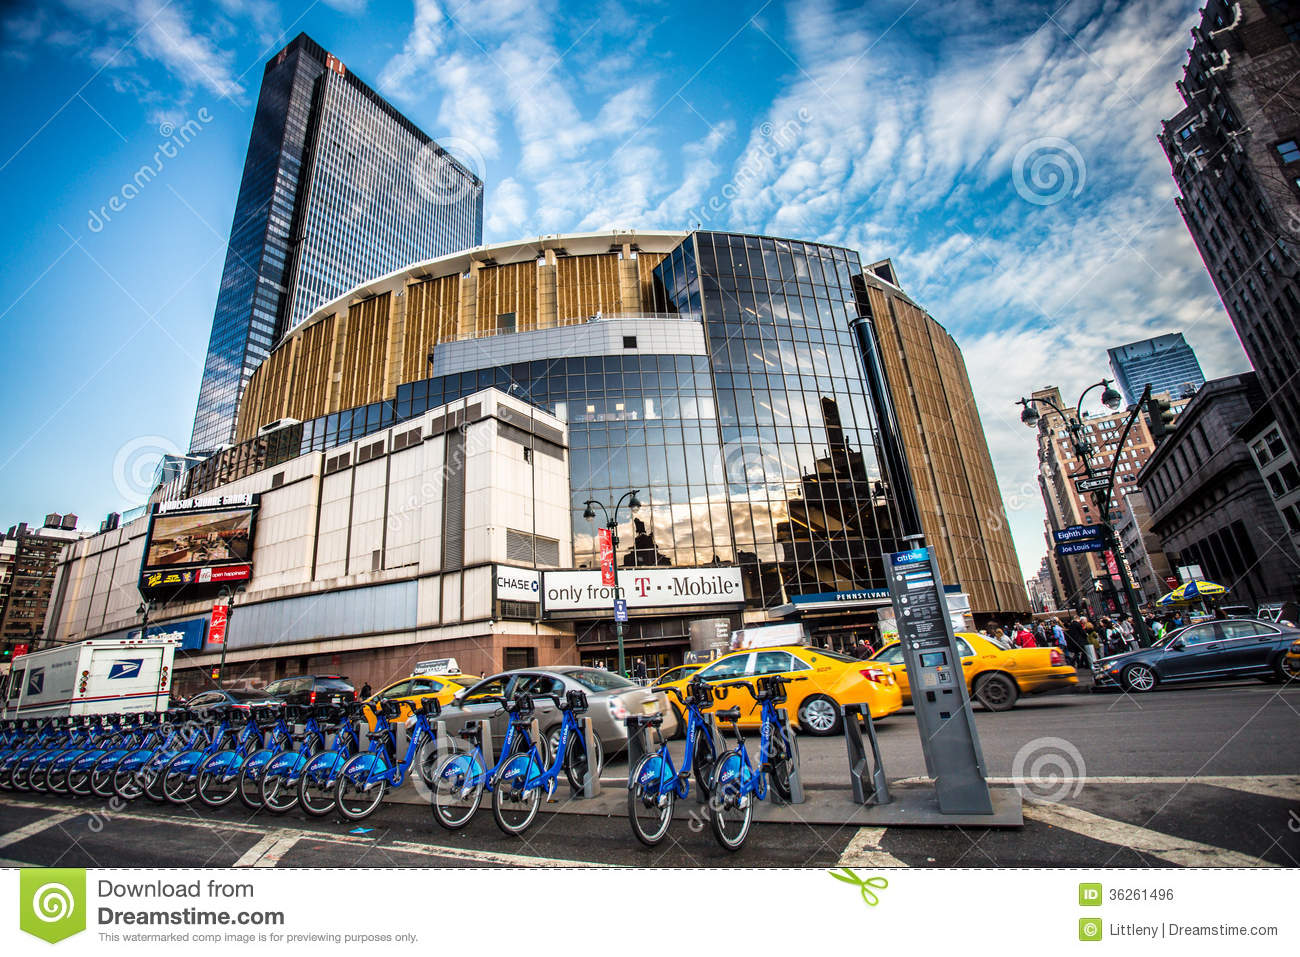 Madison Square Garden Photo Ditorial Image Du Neuf 36261496